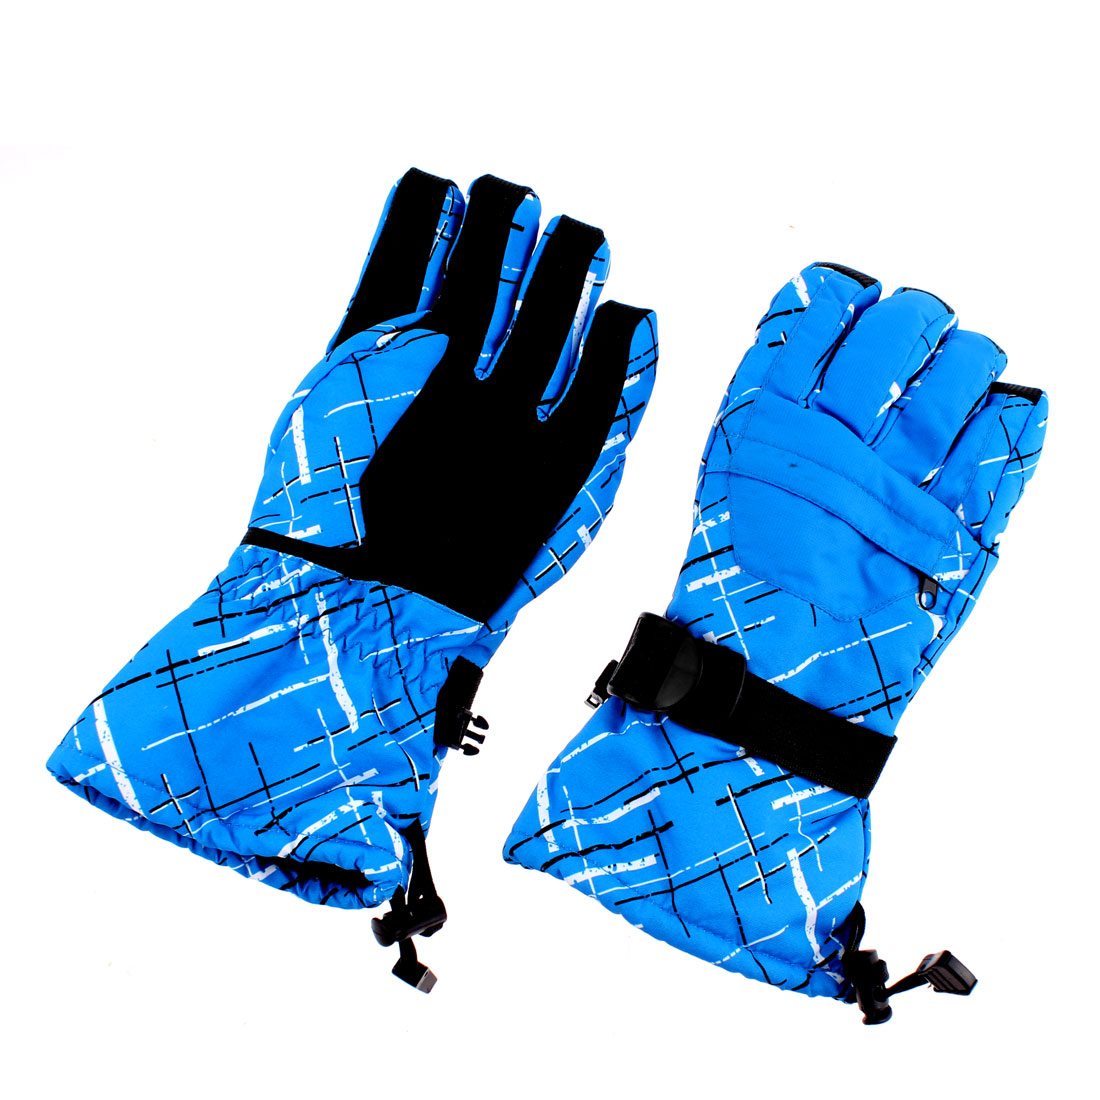 Men Winter Hiking Ski Snow Snowboarding Gloves Blue Graffiti XL Pair